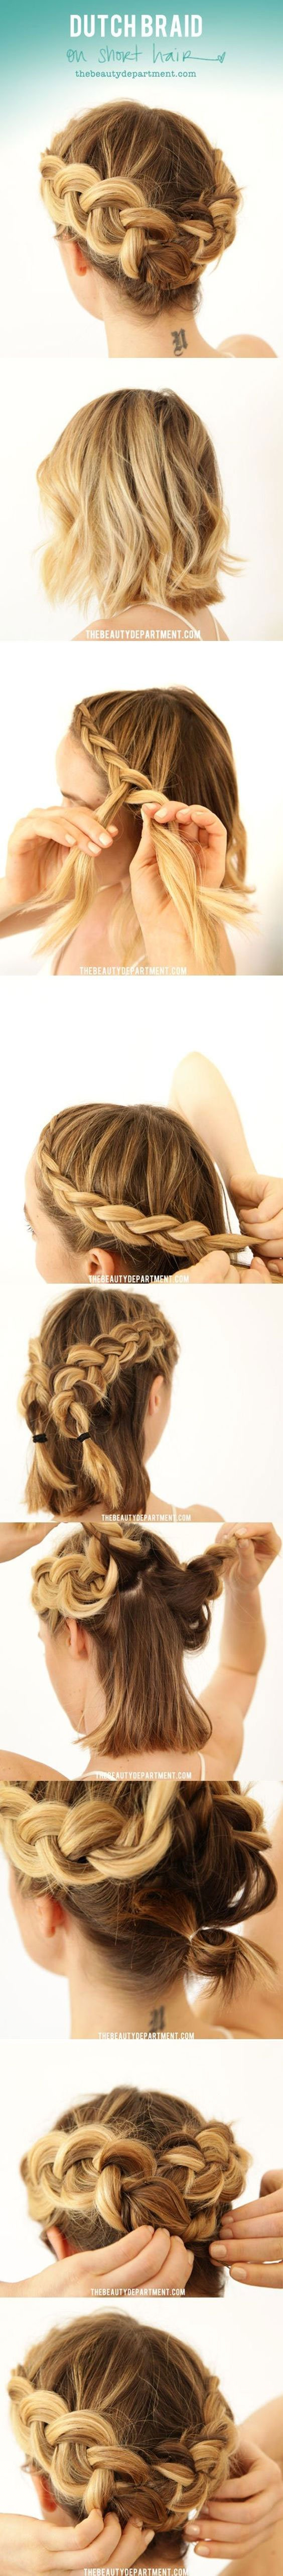 Braided Hairstyle Tutorials For Autumn Season 2016-17 6